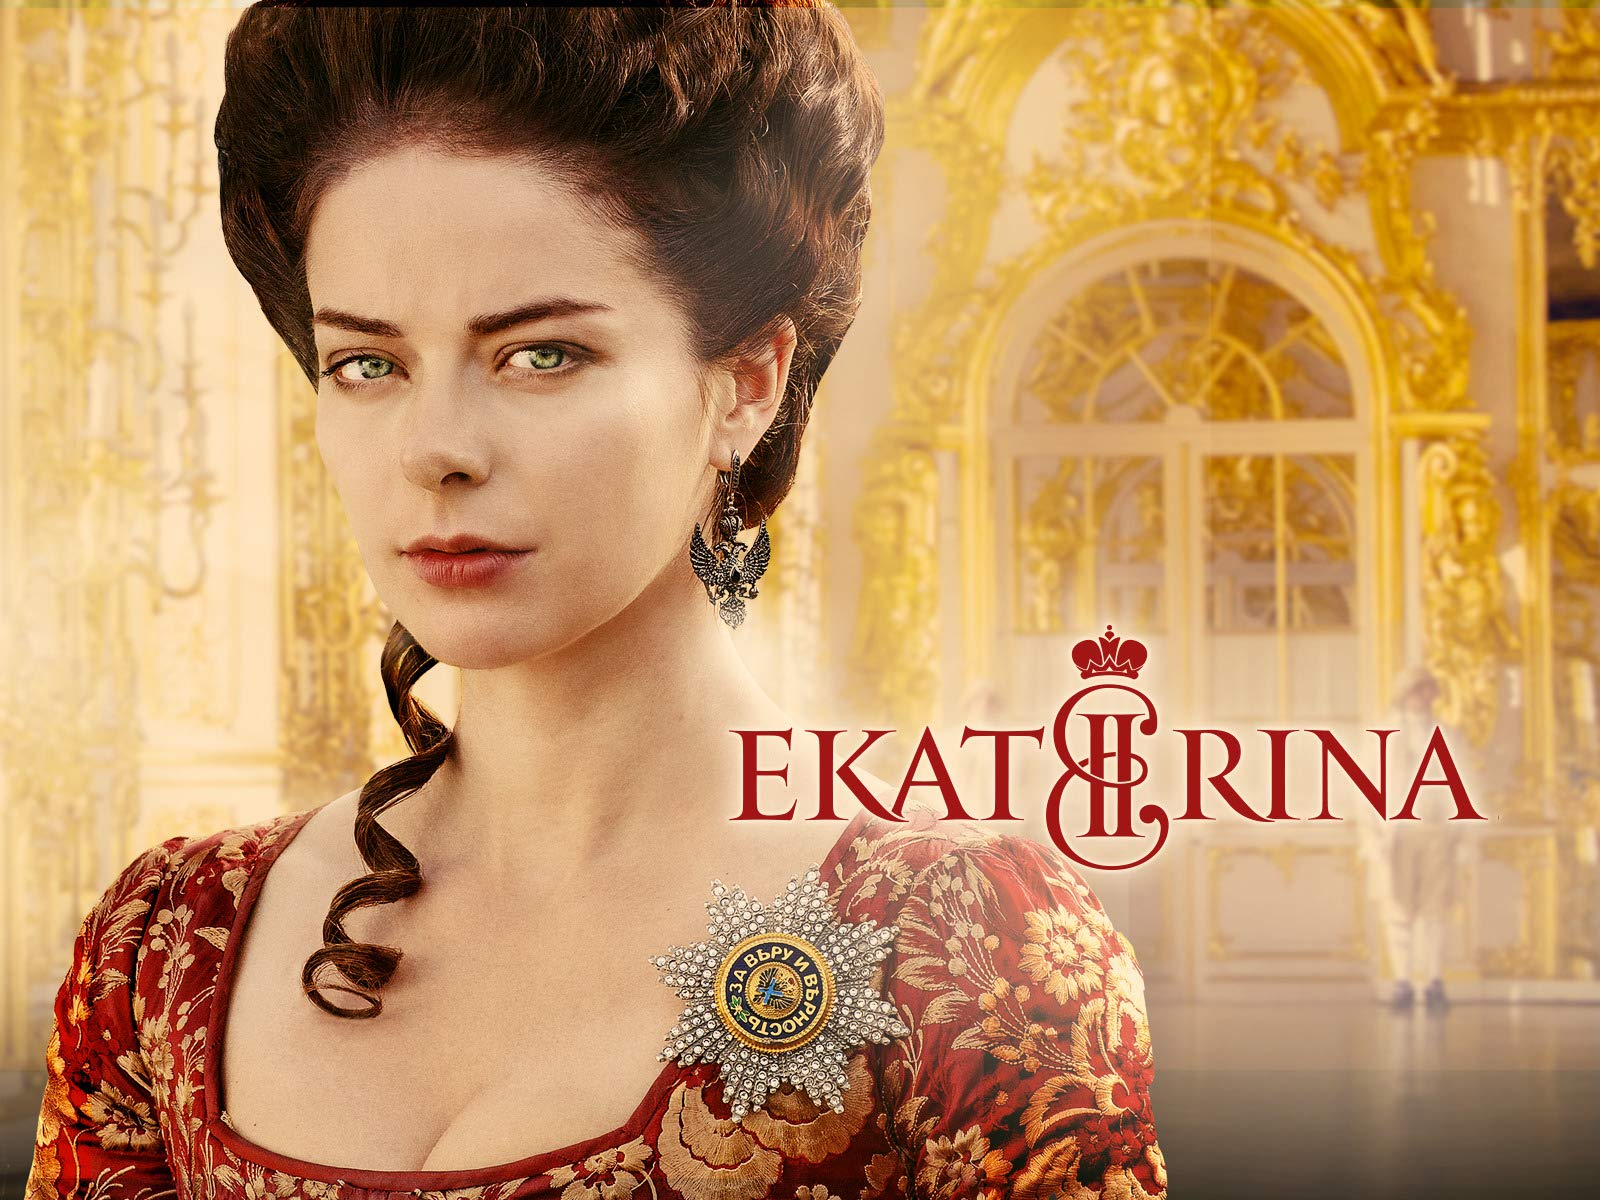 ekaterina rise of catherine the great